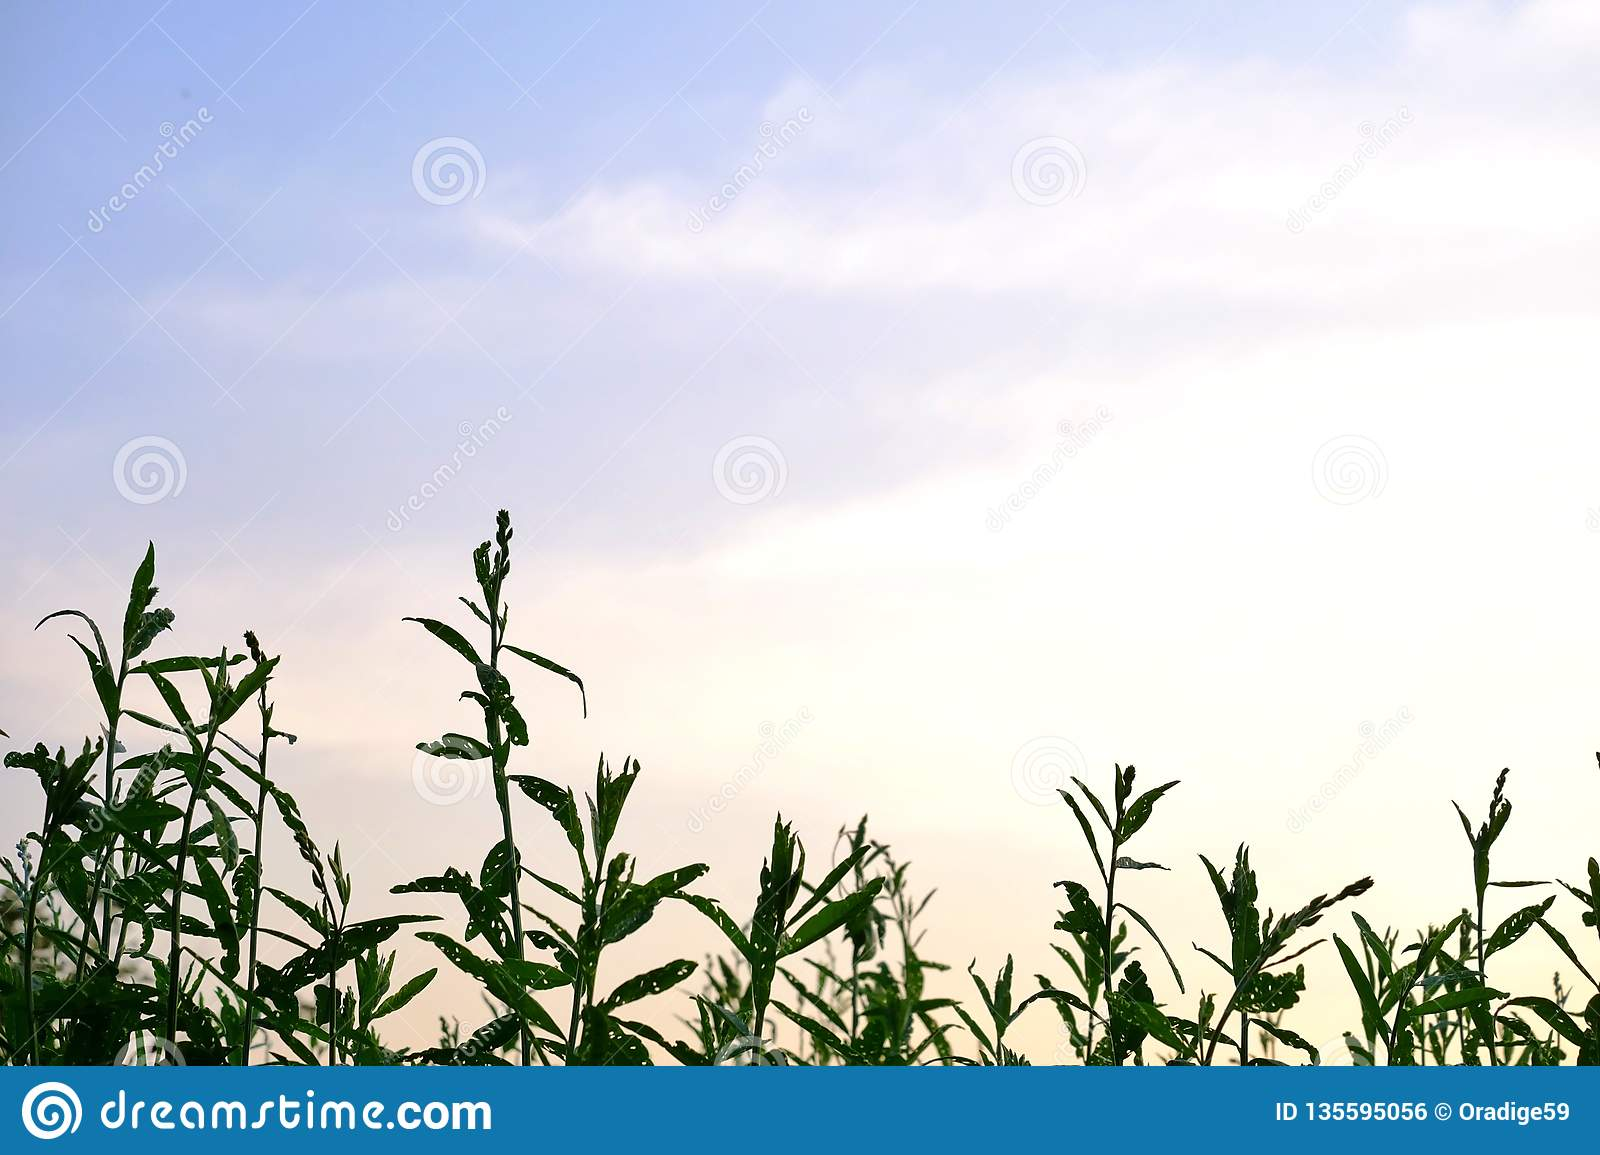 Tropical plant growing in a garden with blue sky white clouds in bright day